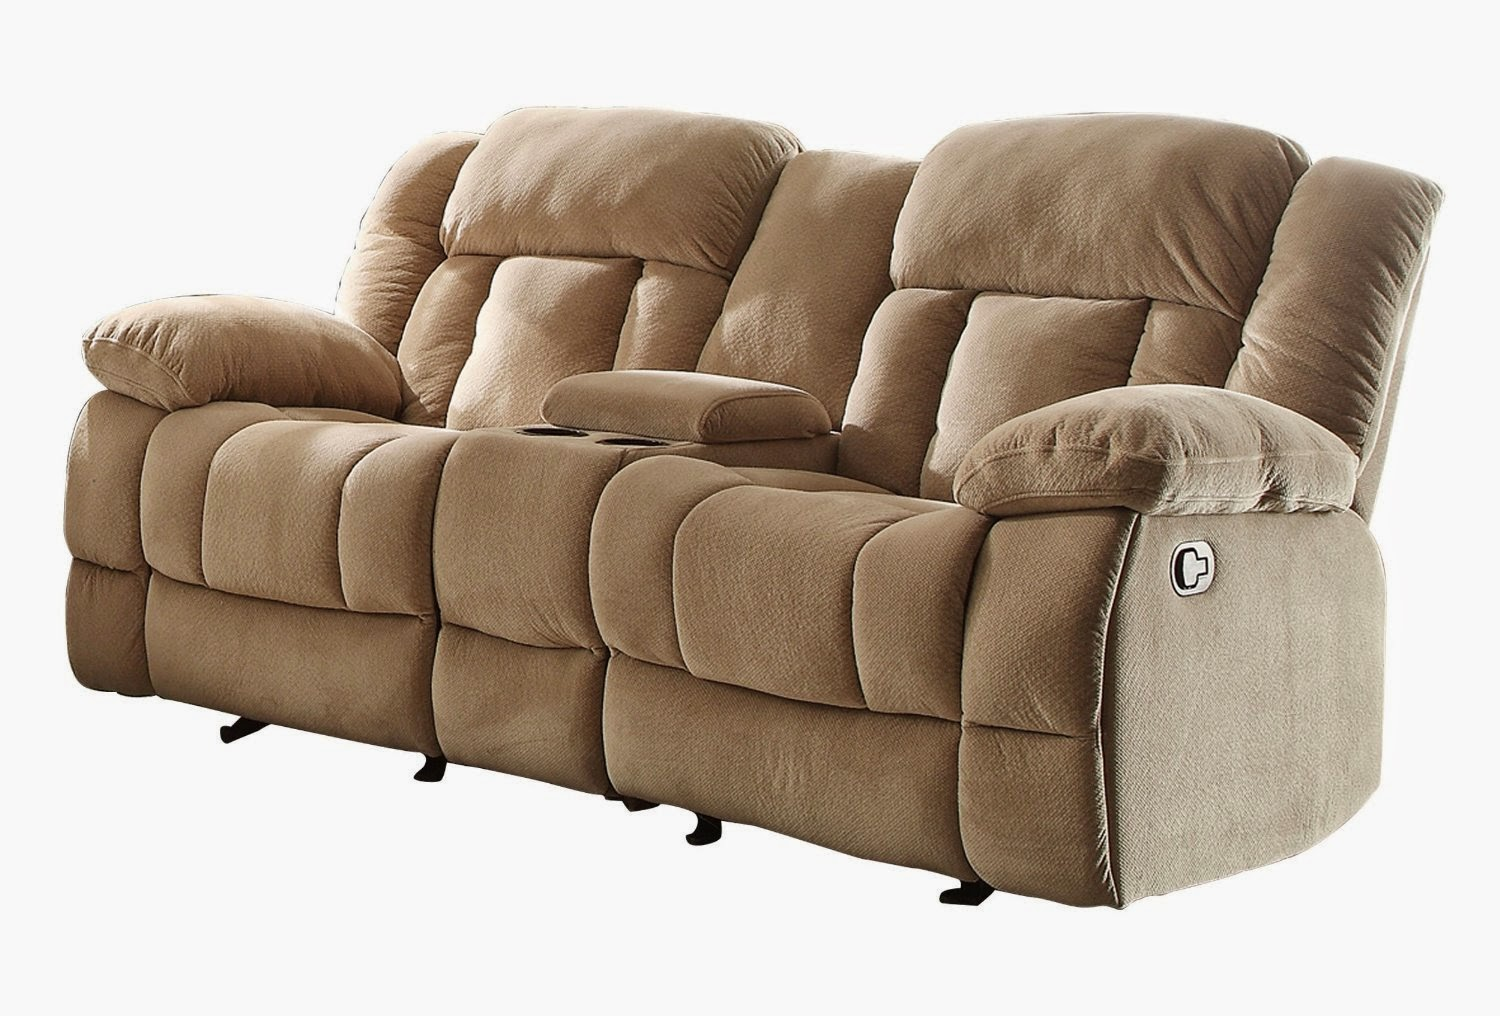 Reclining loveseat sale reclining sofas and loveseats cheap Fabric sofas and loveseats